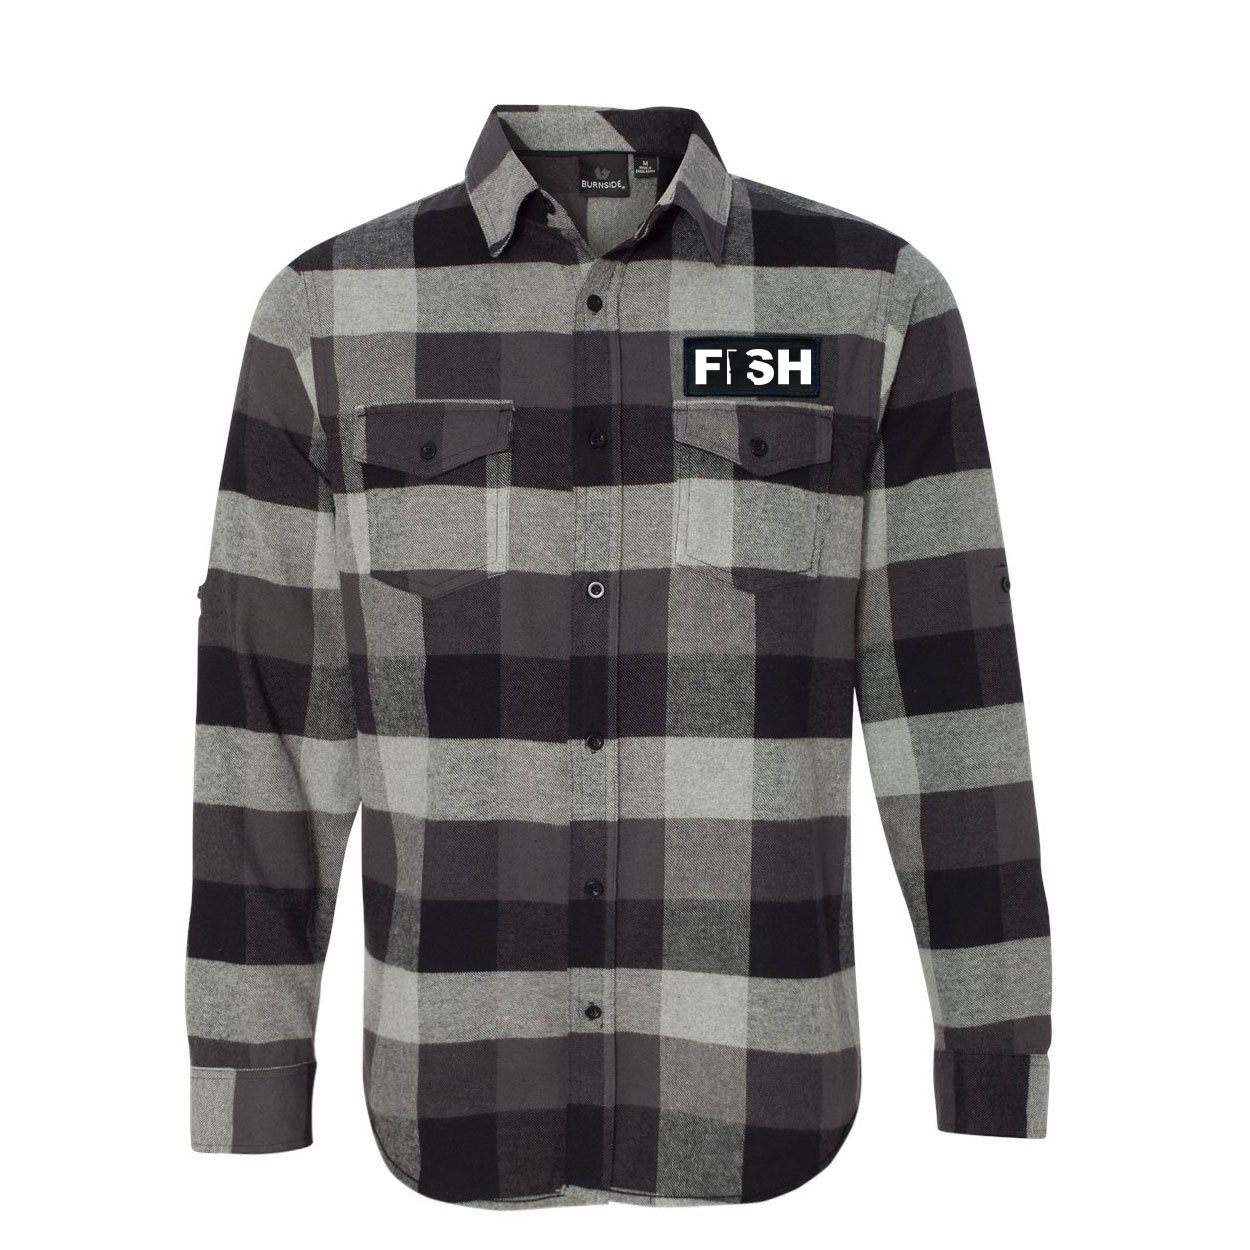 Fish Minnesota Classic Unisex Long Sleeve Woven Patch Flannel Shirt Black/Gray (White Logo)